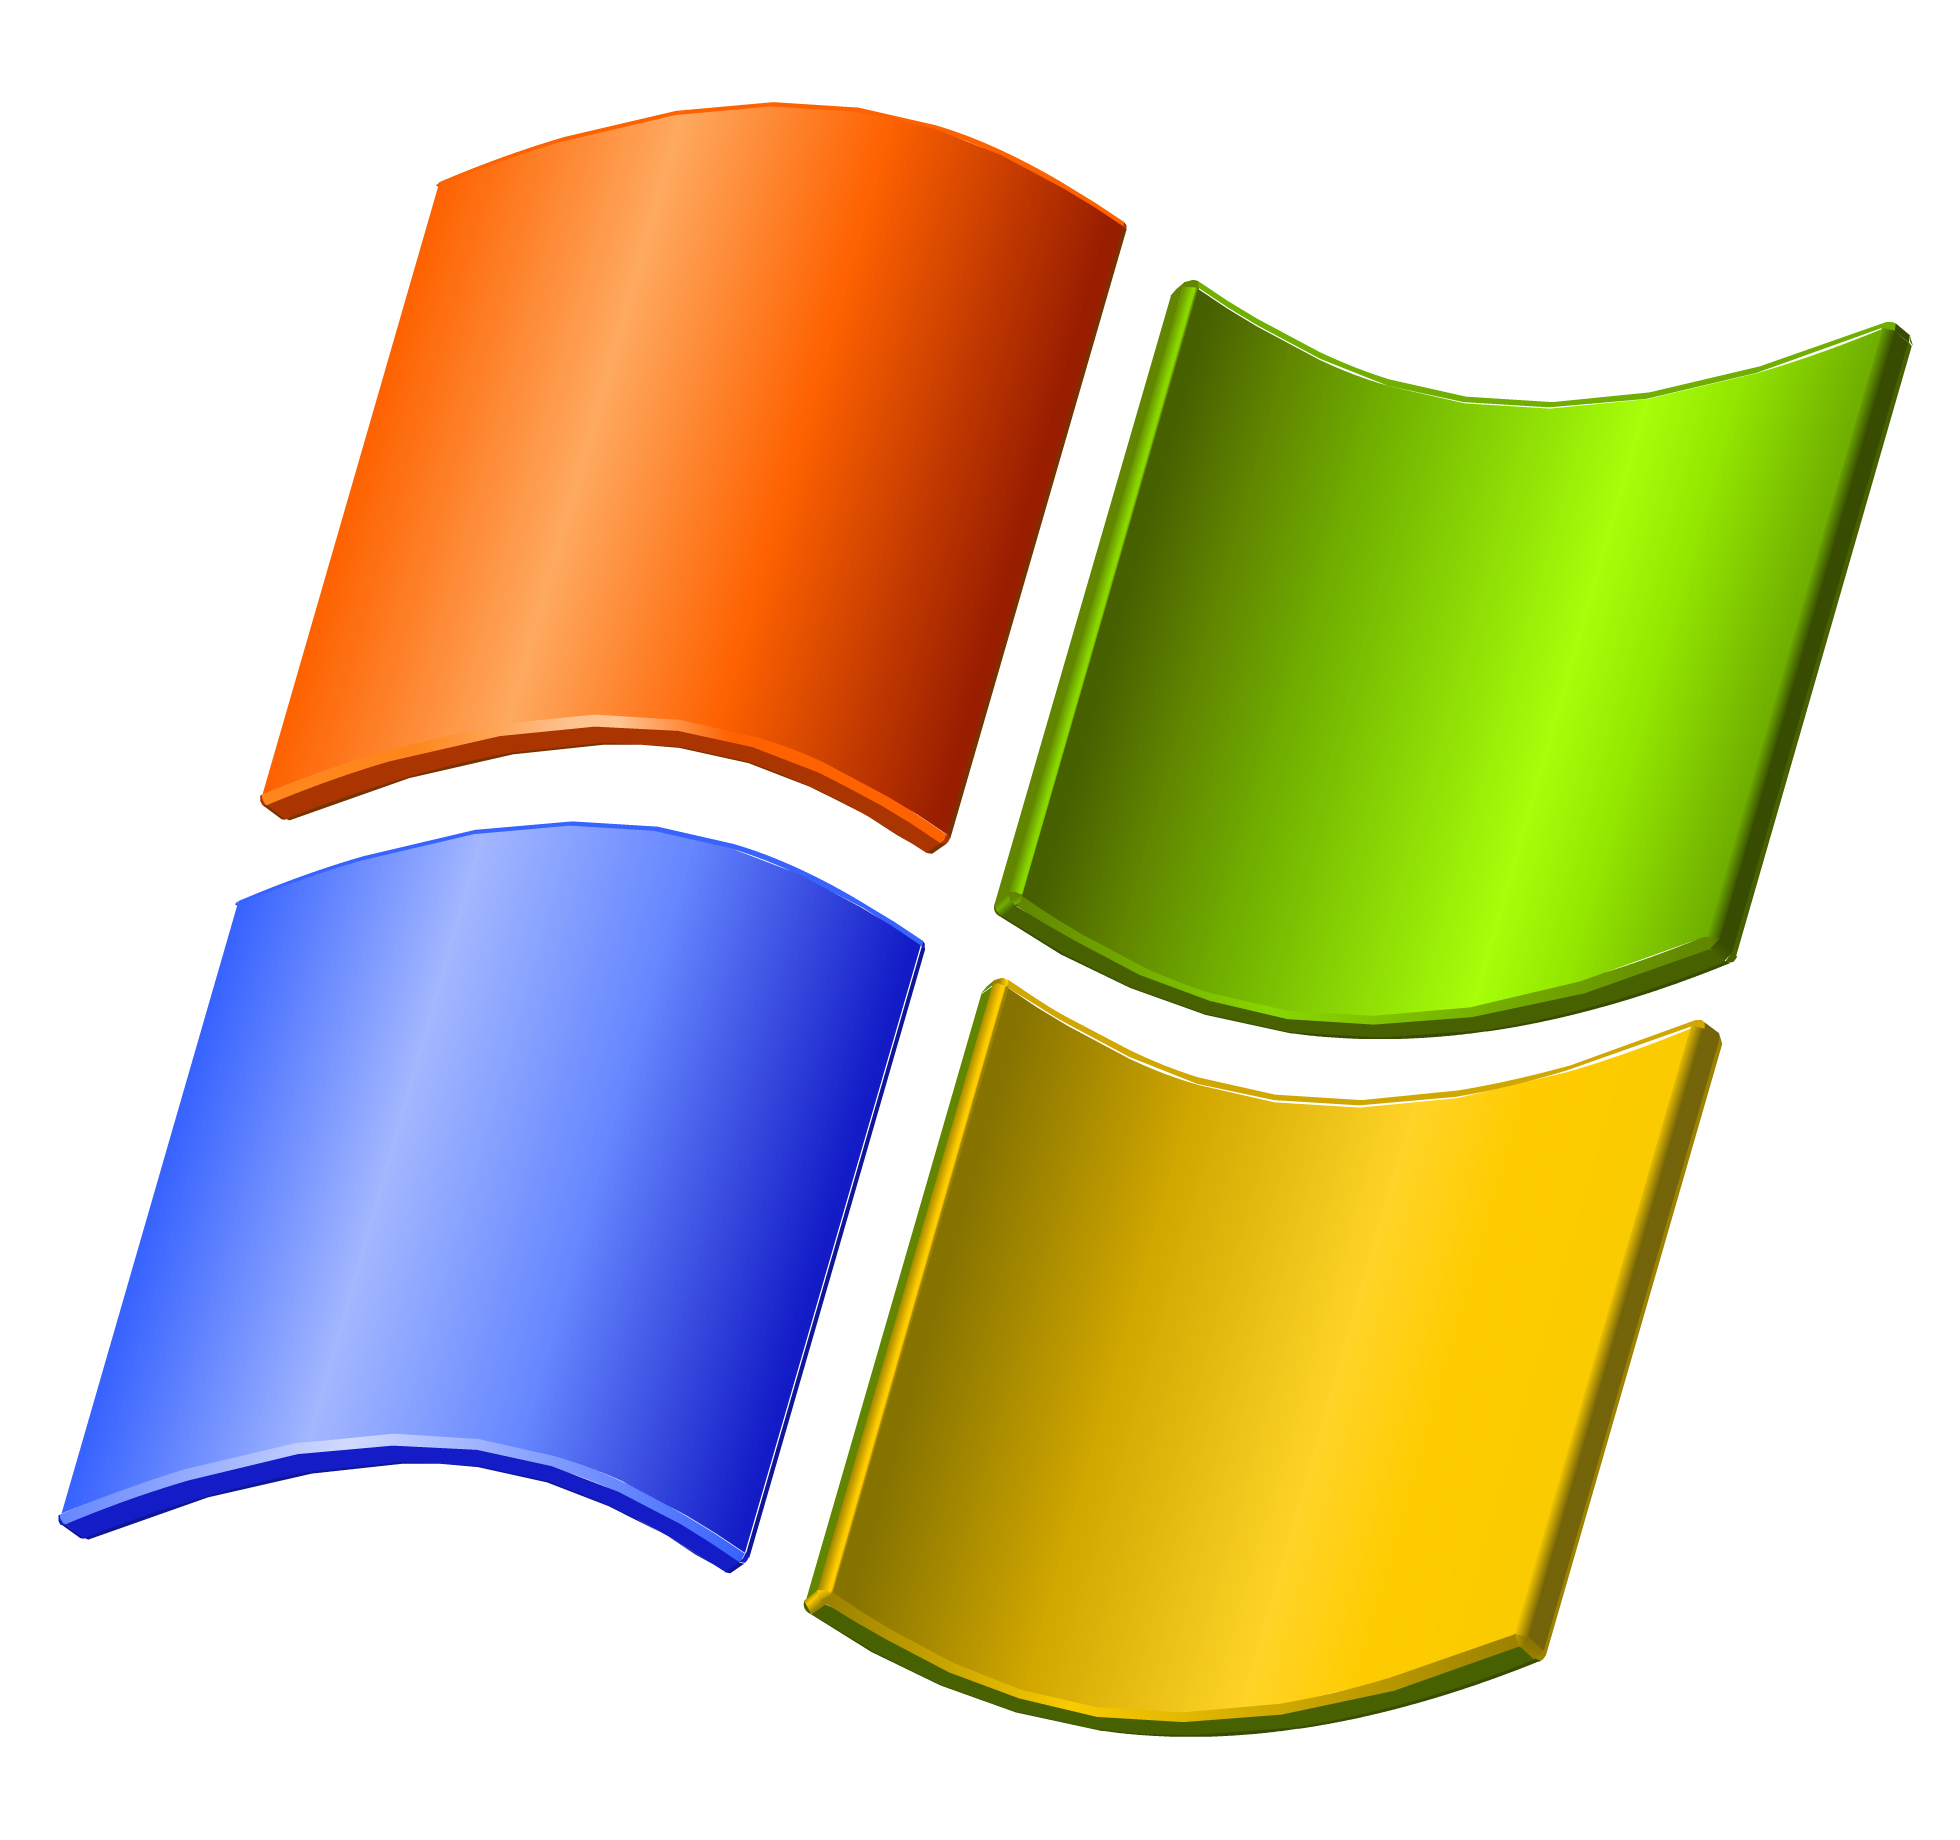 Windows Pics, Technology Collection